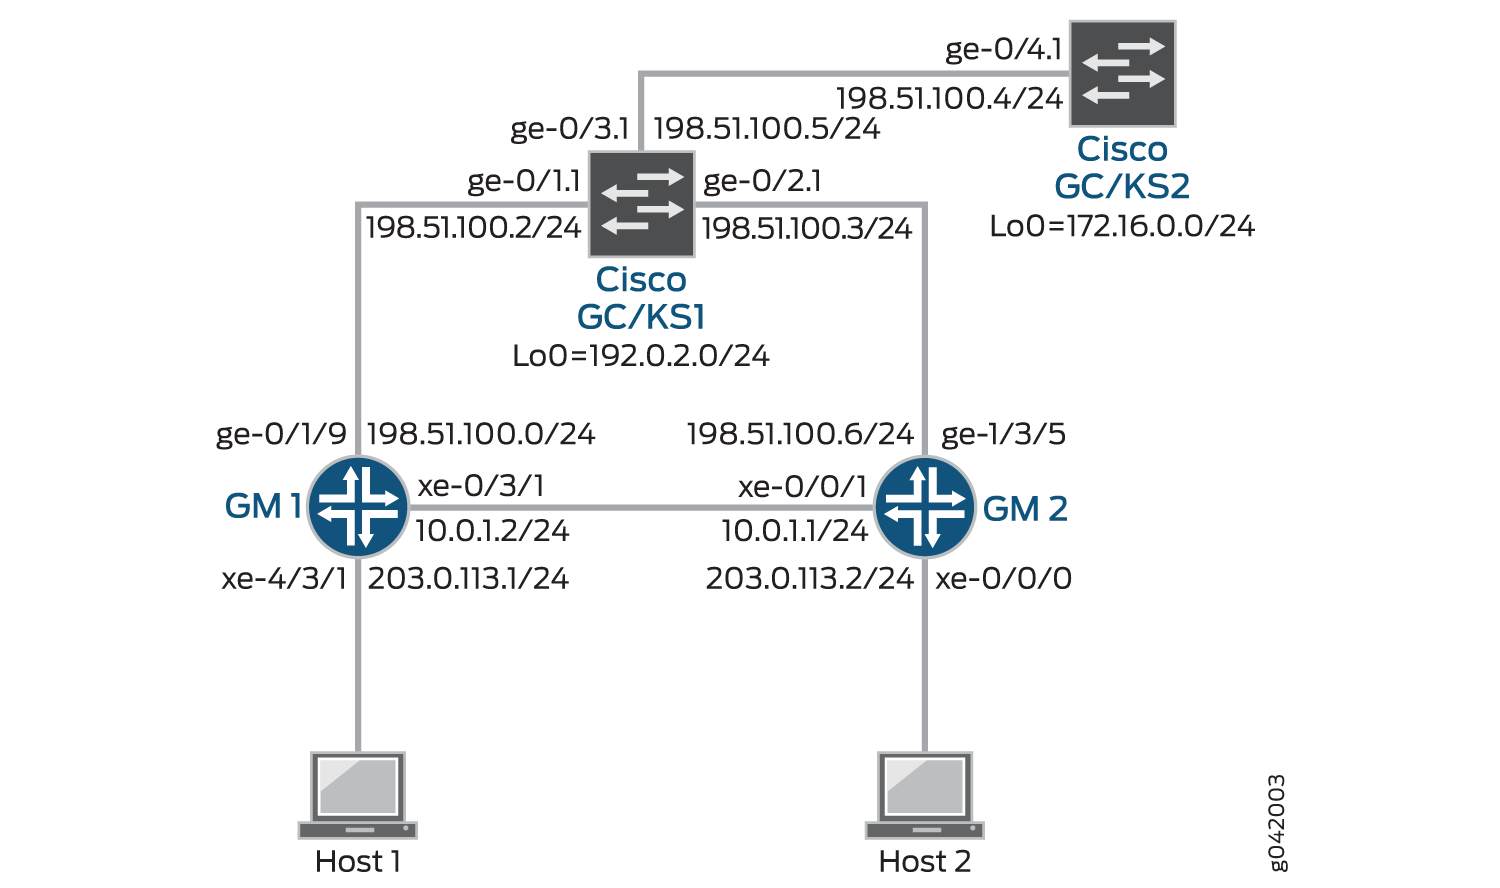 Example Configuring Group Vpns On Routing Devices Techlibrary Cisco Router Diagram Vpn With Multiple Gc Ks